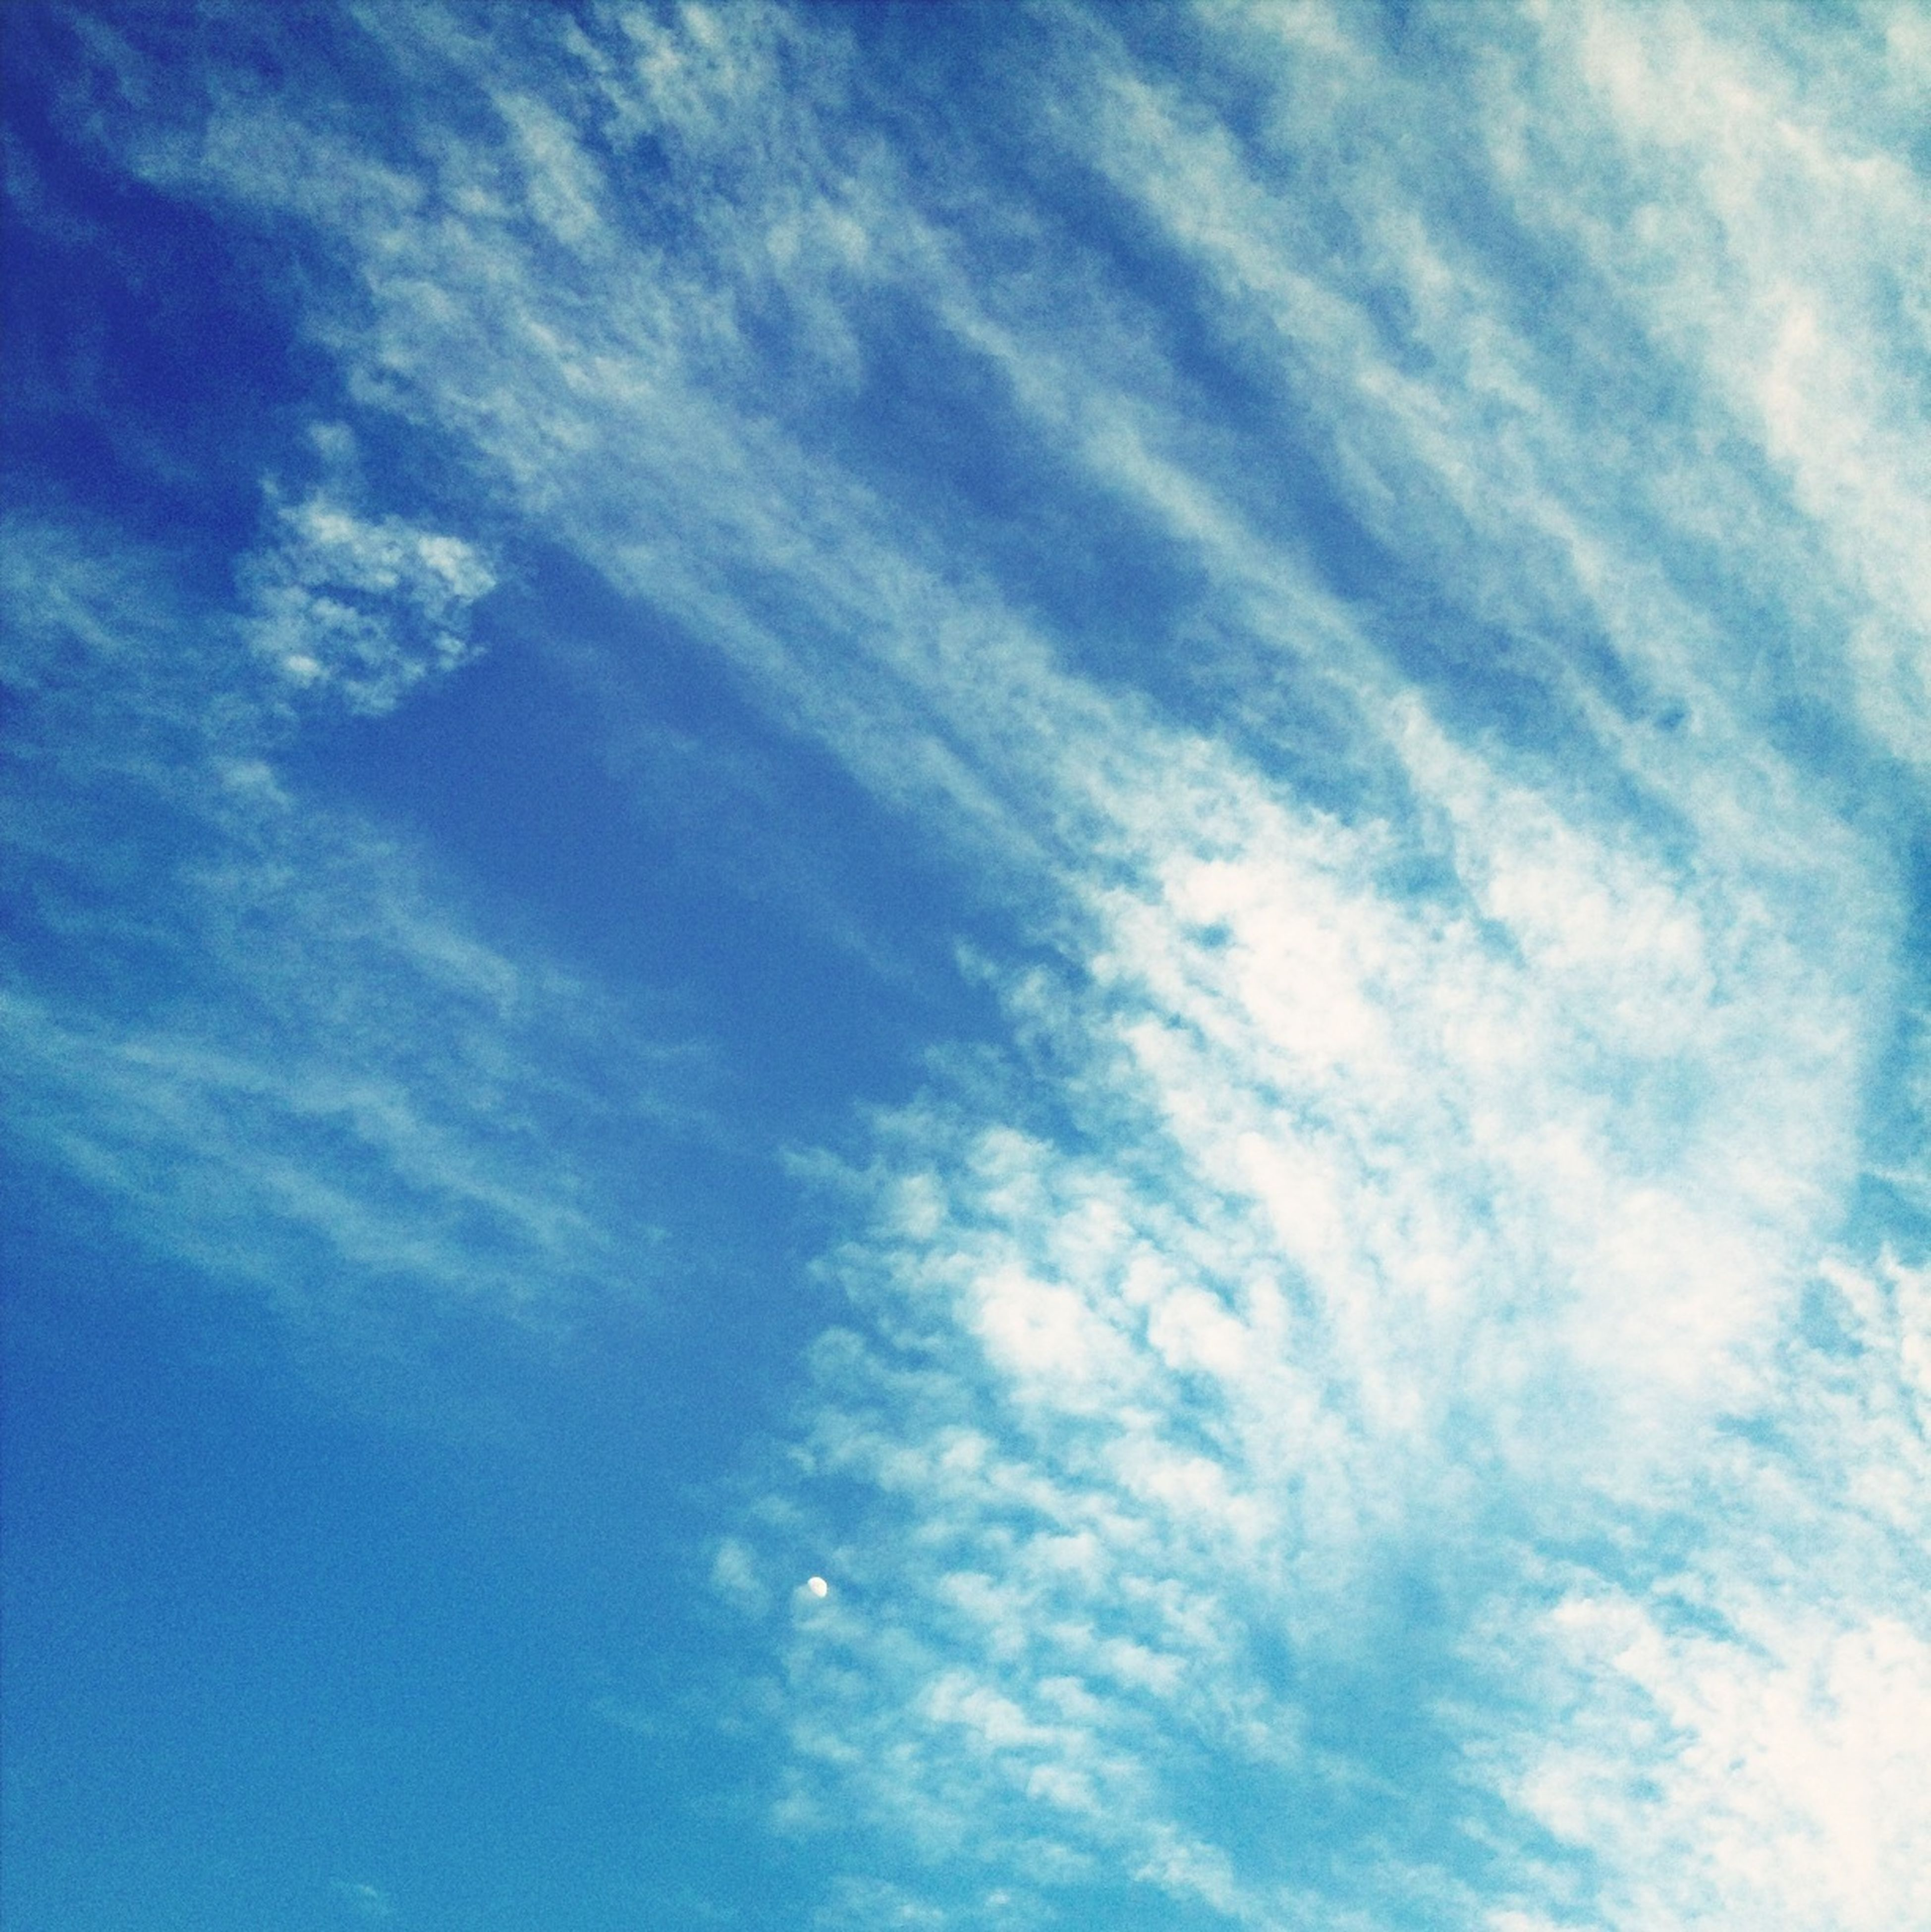 low angle view, sky, blue, cloud - sky, beauty in nature, sky only, tranquility, scenics, nature, cloudy, backgrounds, cloud, tranquil scene, full frame, cloudscape, idyllic, outdoors, day, no people, white color